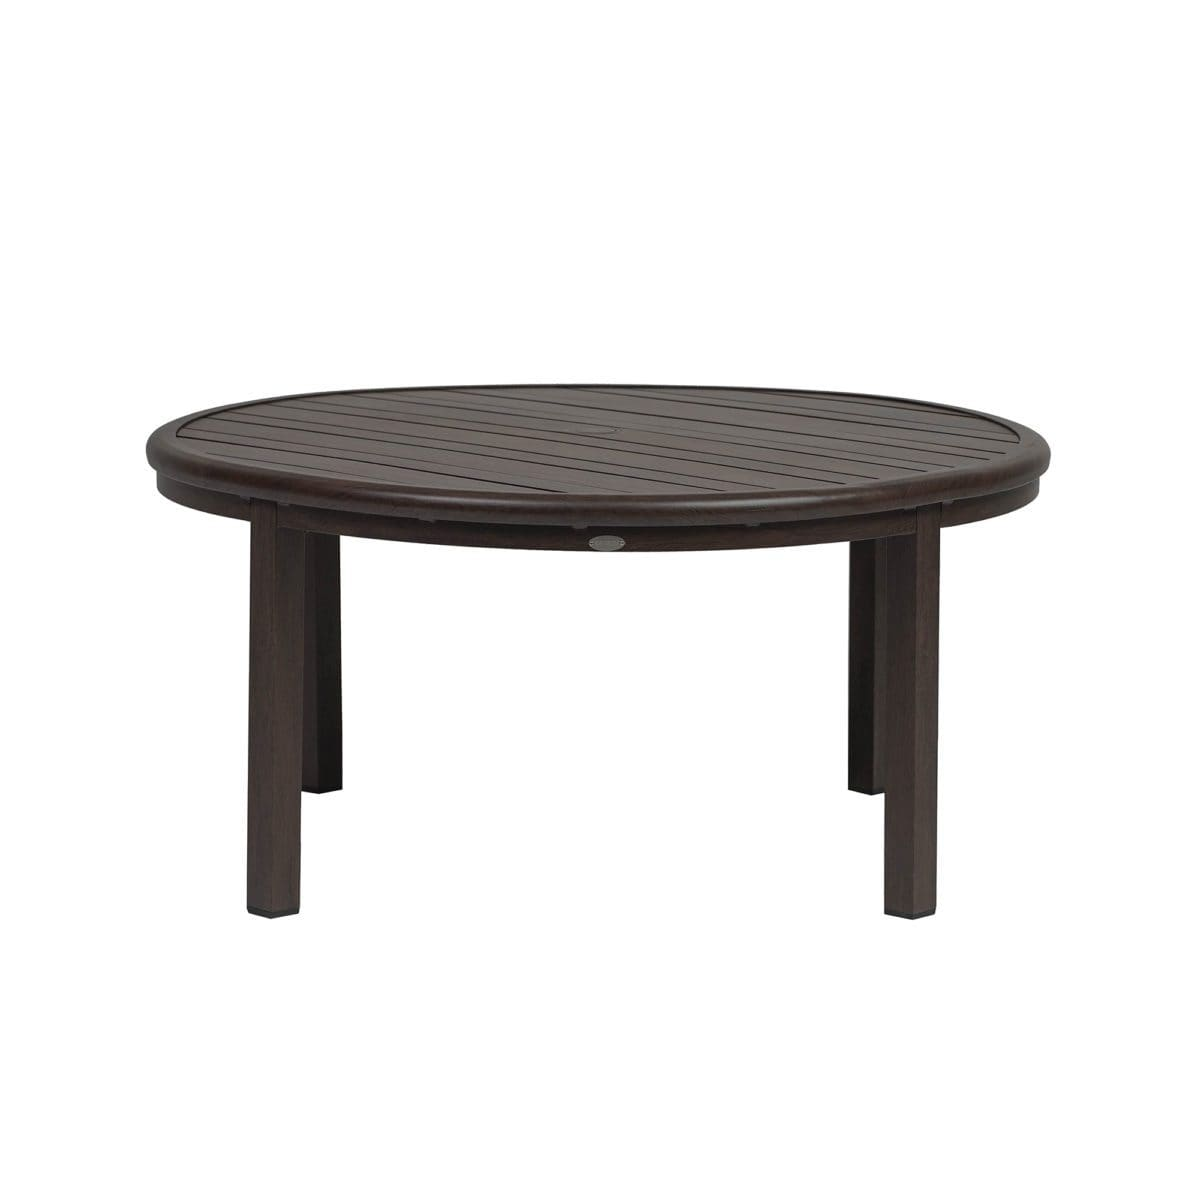 "Ratana Dining Table Canbria 48"" Rd Conversation Table w/Umbrella Hole"